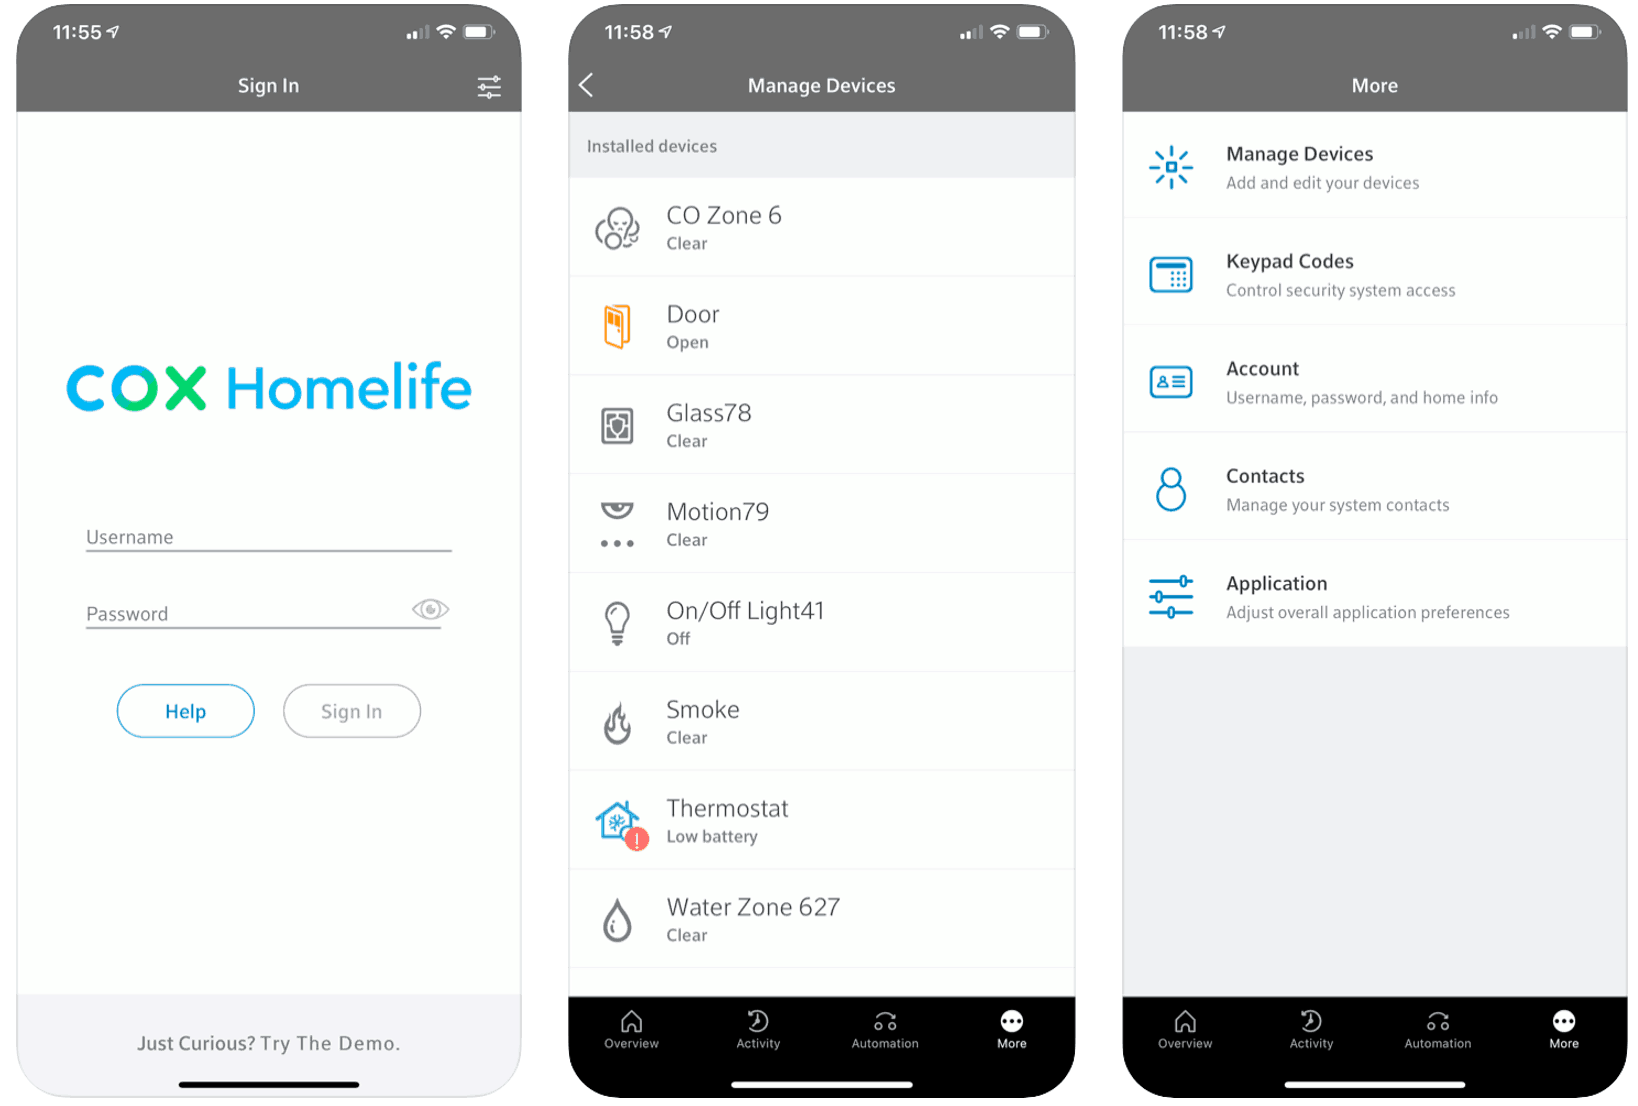 Cox Homelife Mobile App